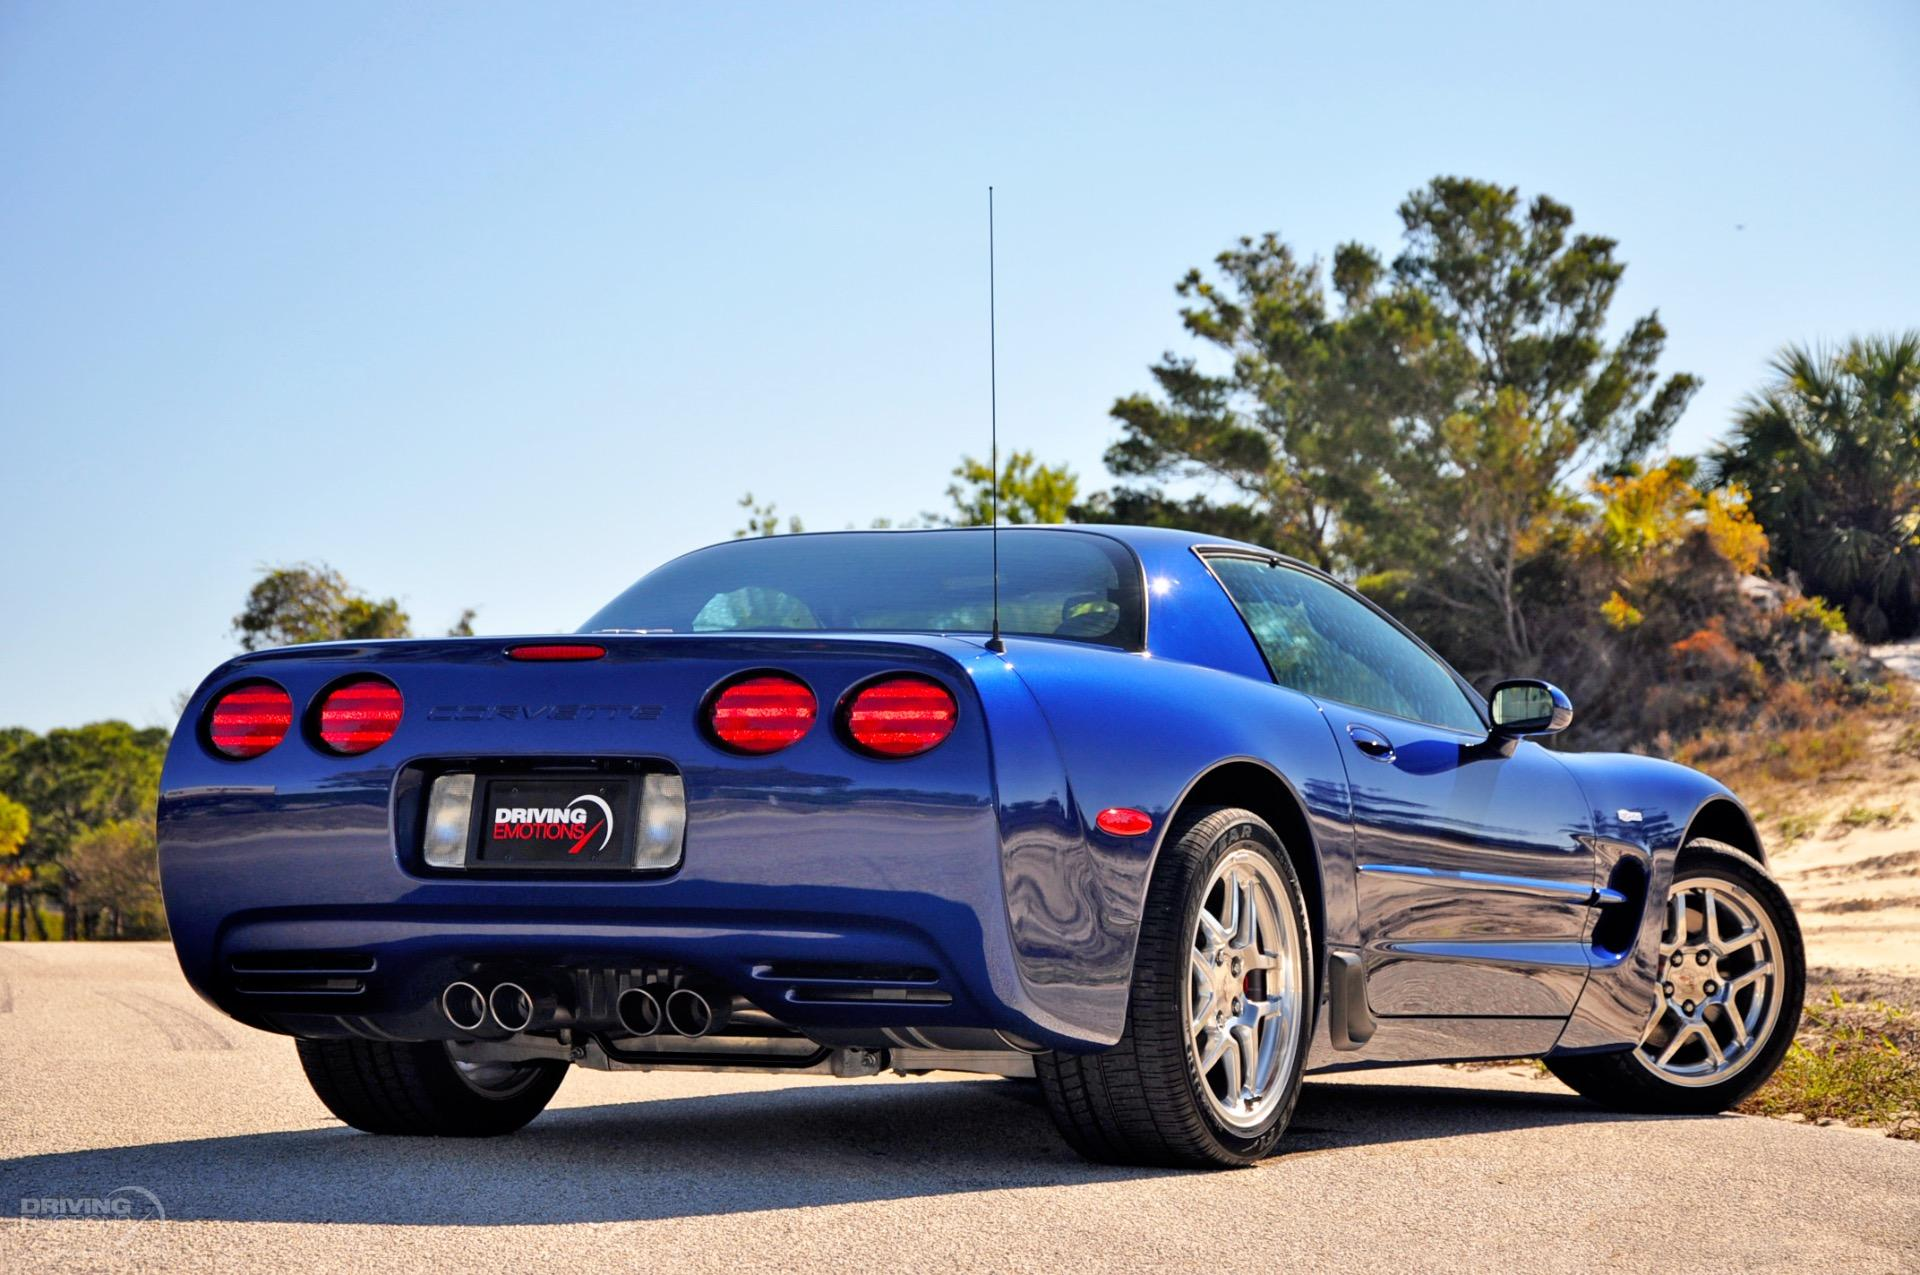 Used 2004 Chevrolet Corvette Z06 Commemorative Edition Z06  Commemorative Edition | Lake Park, FL